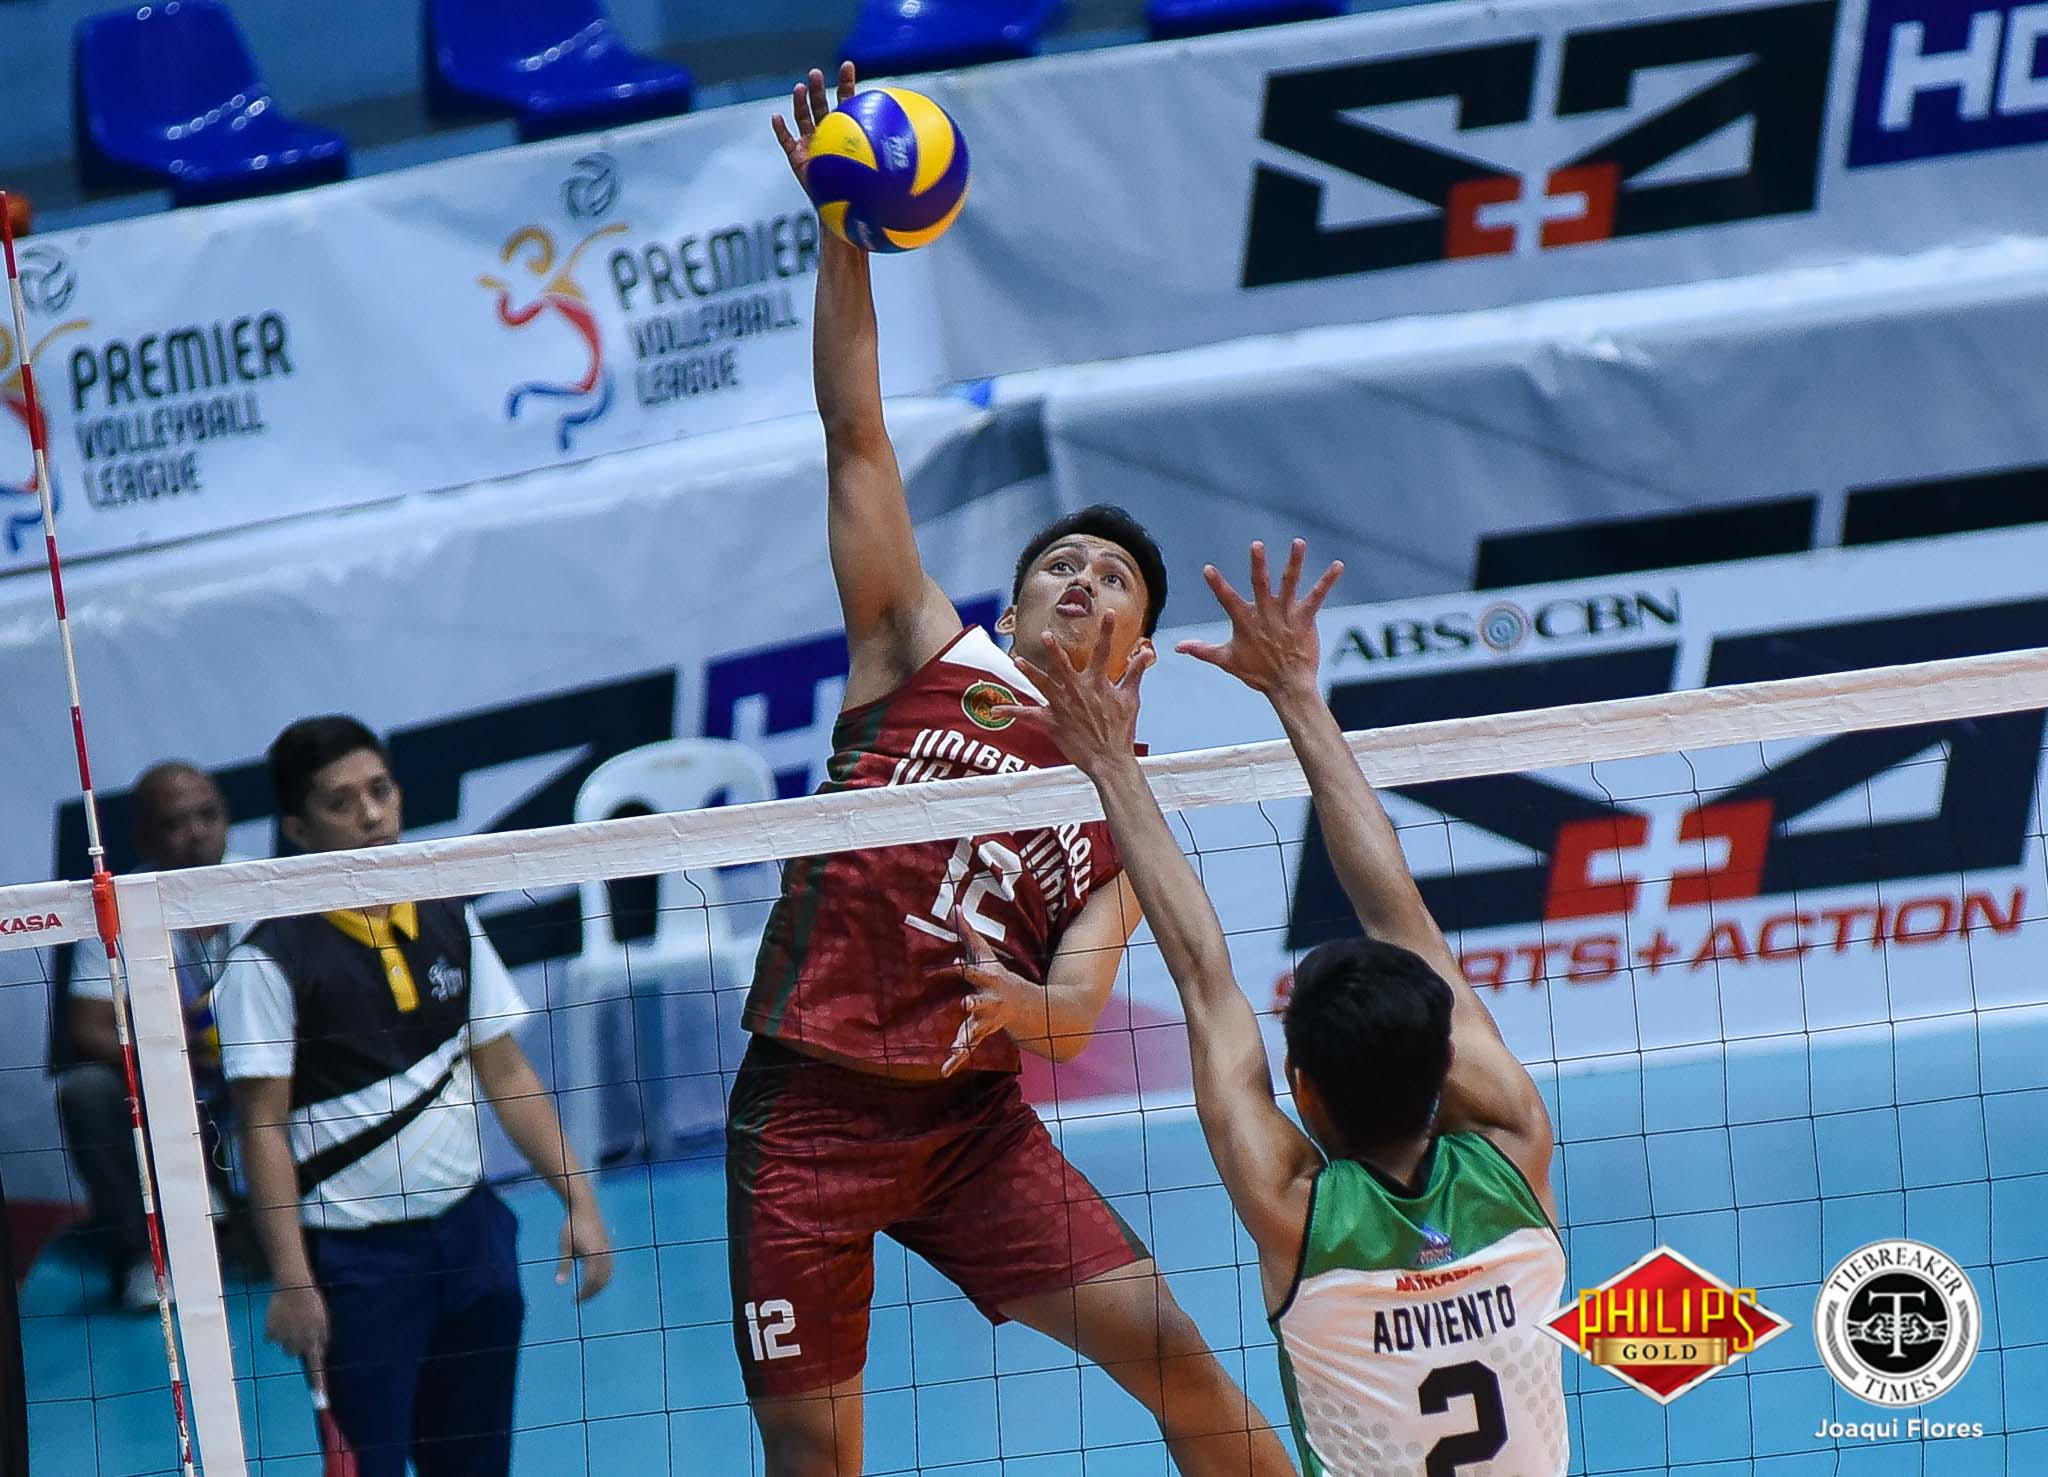 Tiebreaker Times UP douses Saint Benilde for back-to-back wins CSB News PVL UP Volleyball  Vince Abrot UP Men's Volleyball Miguel Nasol Mac Millete Jerry San Pedro Jerahmeel Baldelovar Hans Chuacuco Benilde Men's Volleyball Arnold Laniog 2018 PVL Season 2018 PVL Men's Collegiate Conference